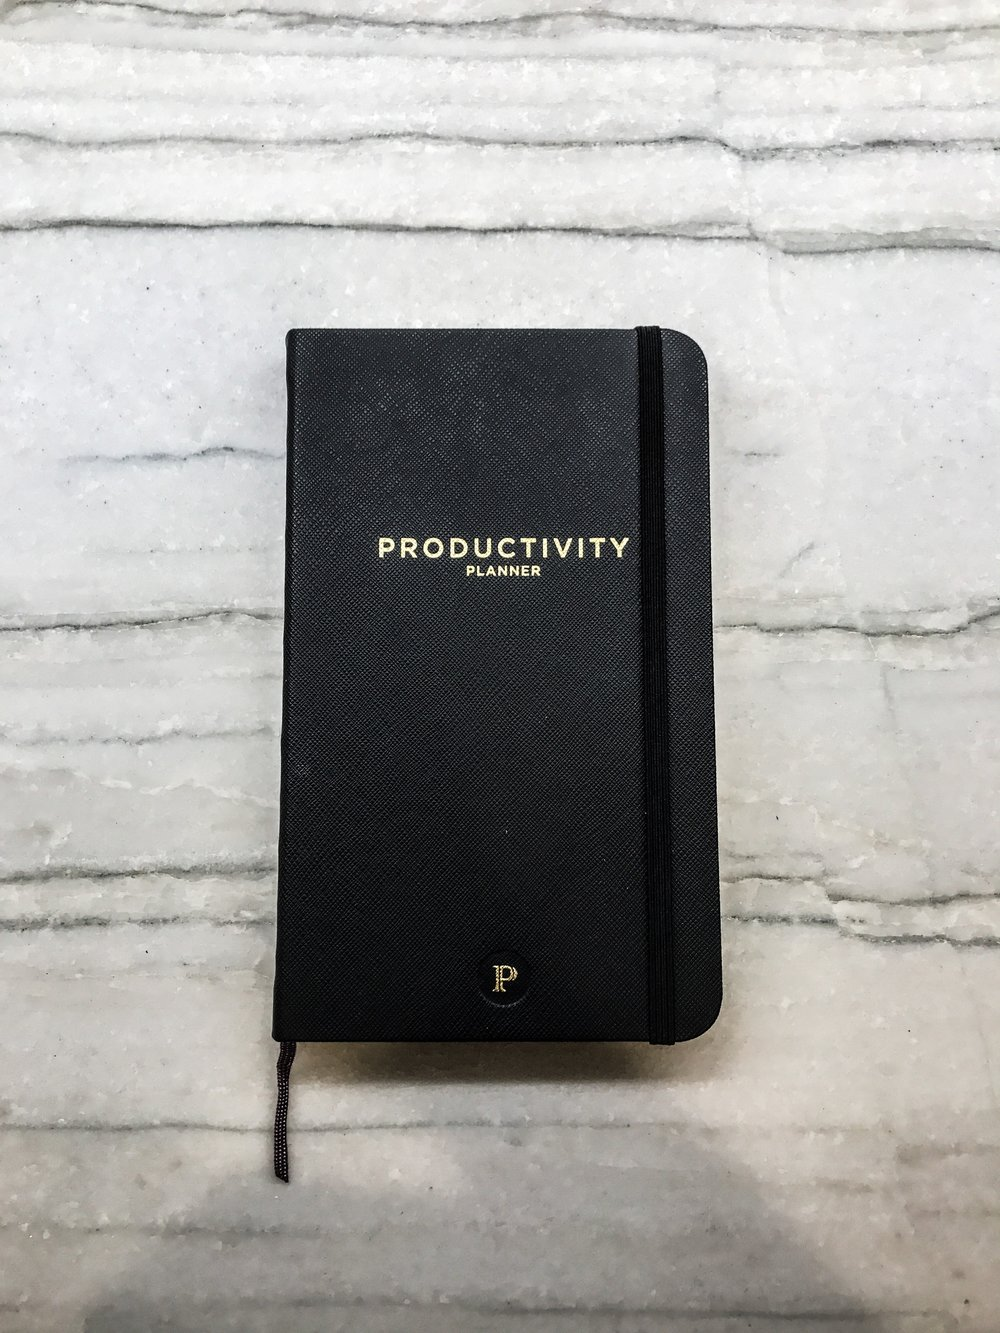 How To Become More Productive. 5 Things You Should Do When Starting A New Routine.